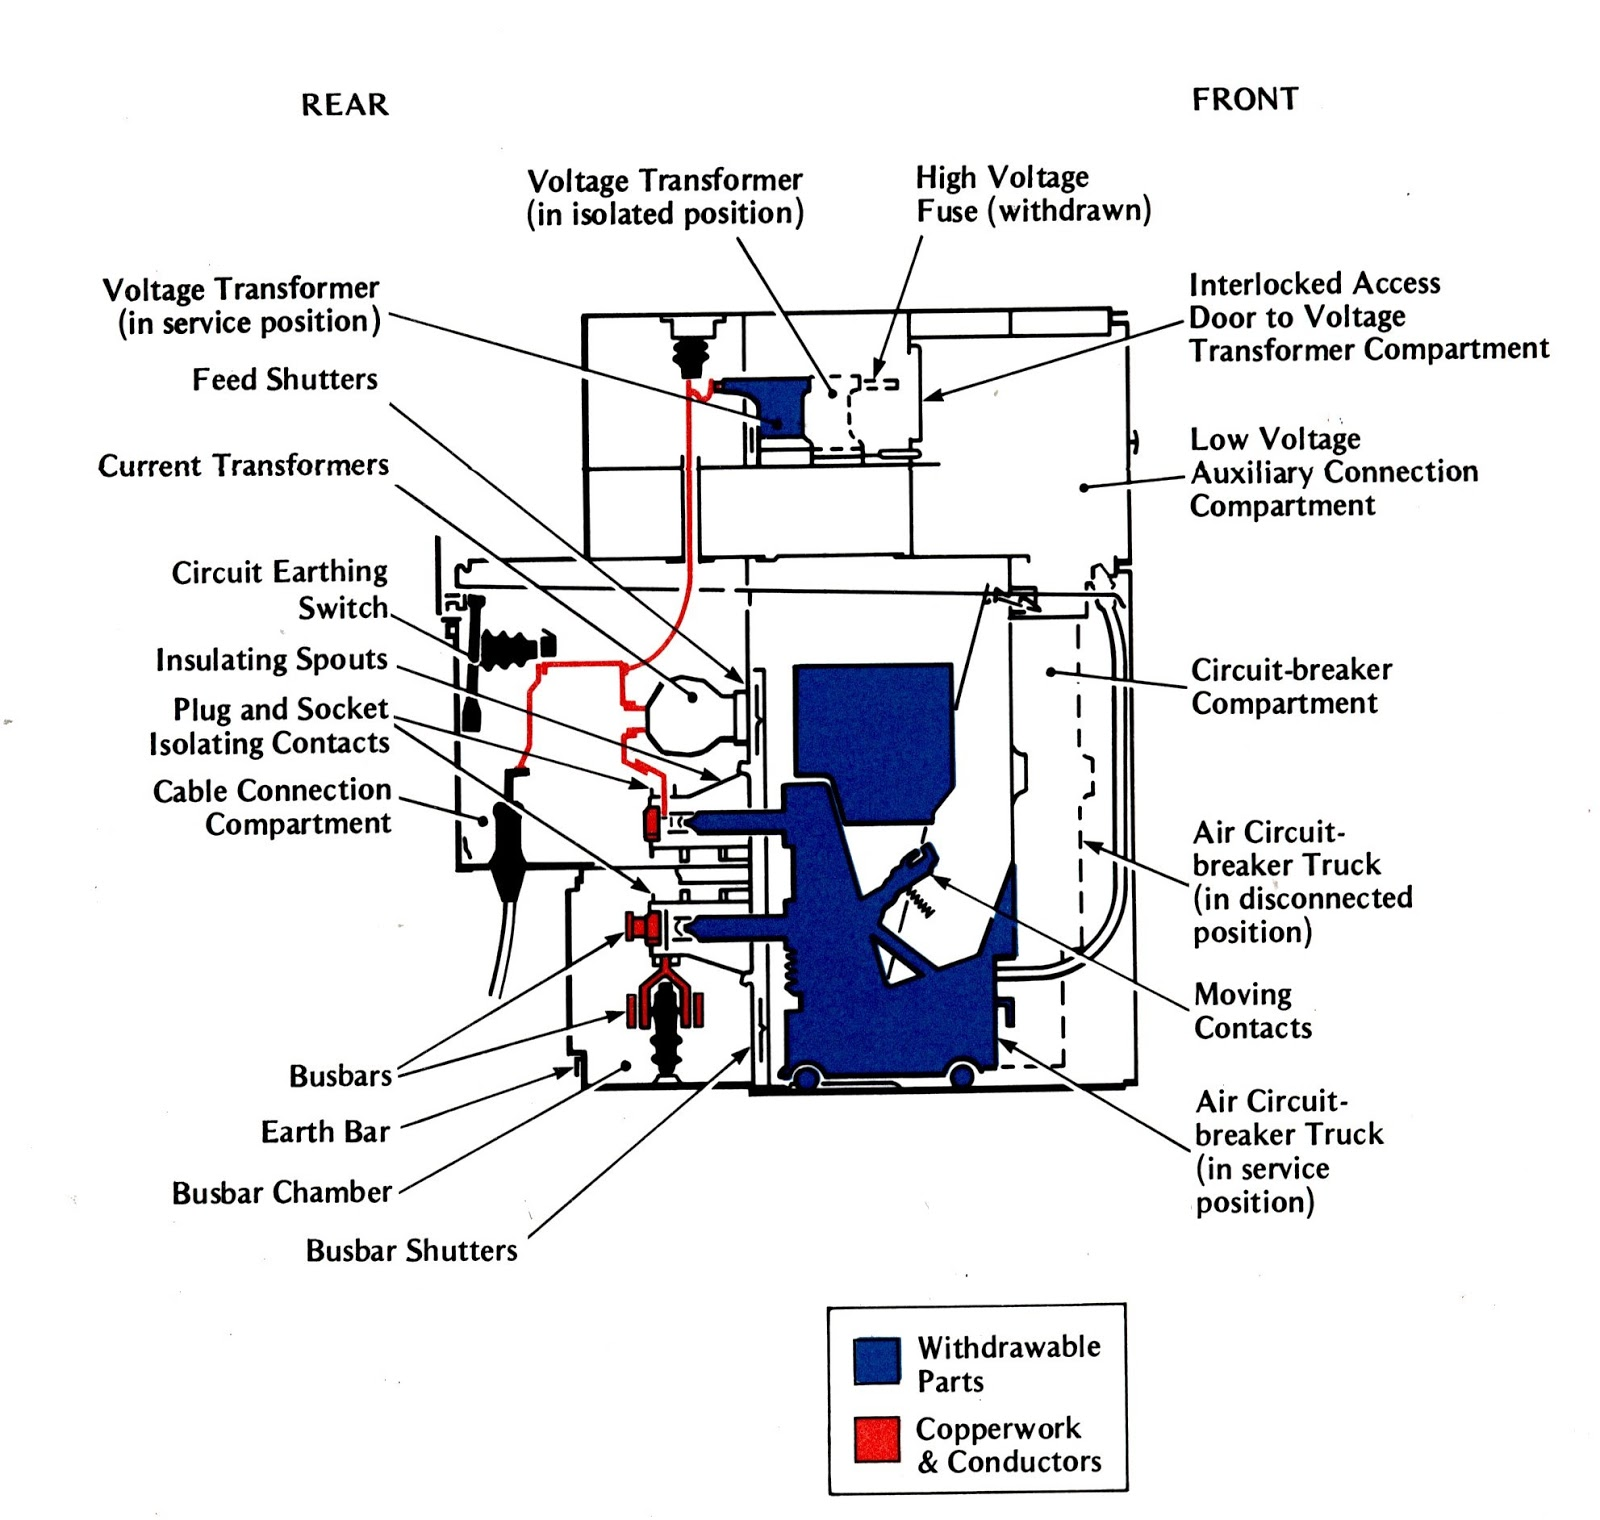 receptacle wiring diagram on high voltage switchgear wiring diagram on lighting wiring power wiring  [ 1600 x 1520 Pixel ]